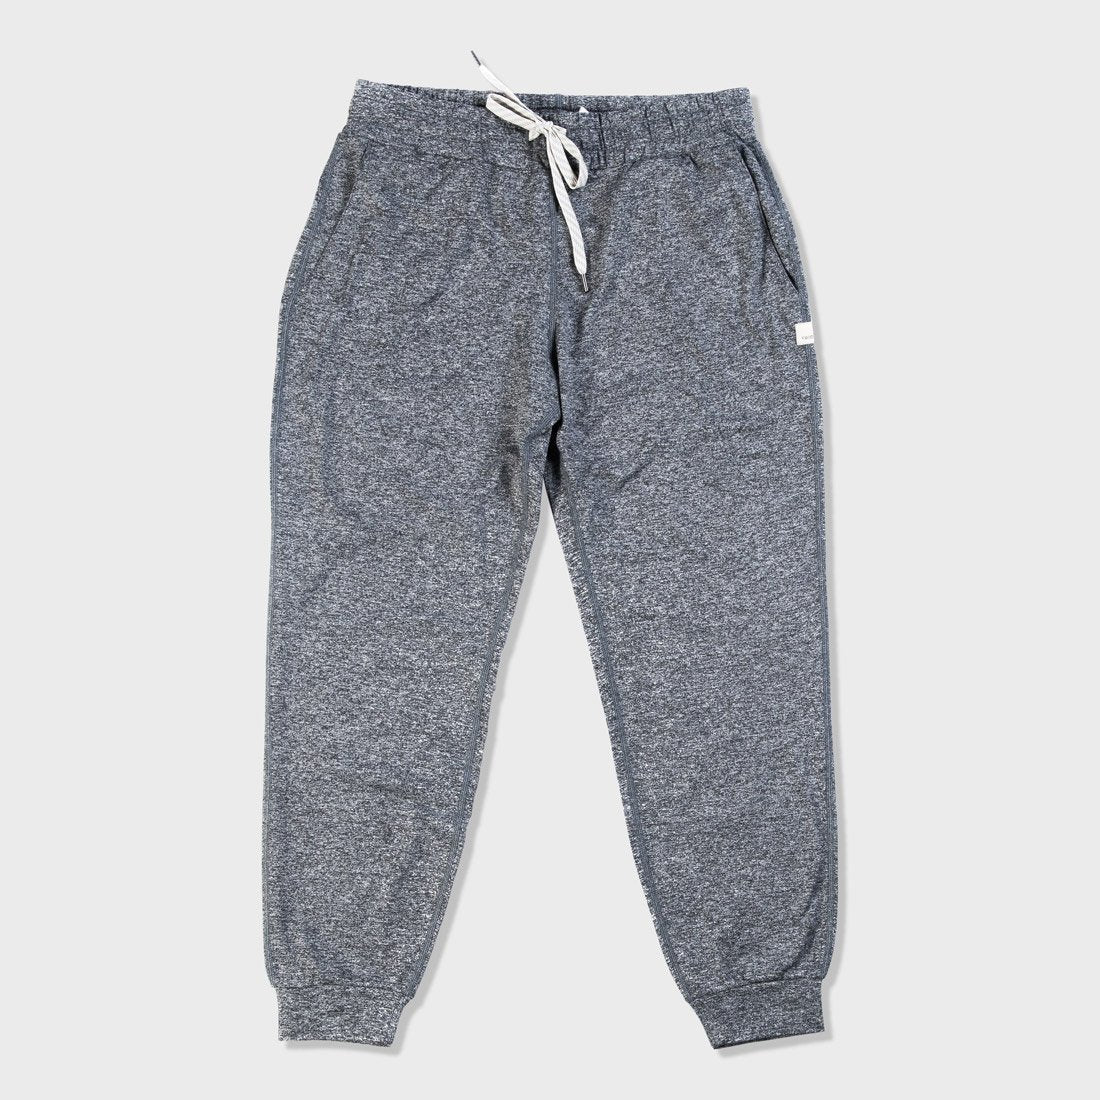 Vuori Women's Performance Jogger Heather Grey